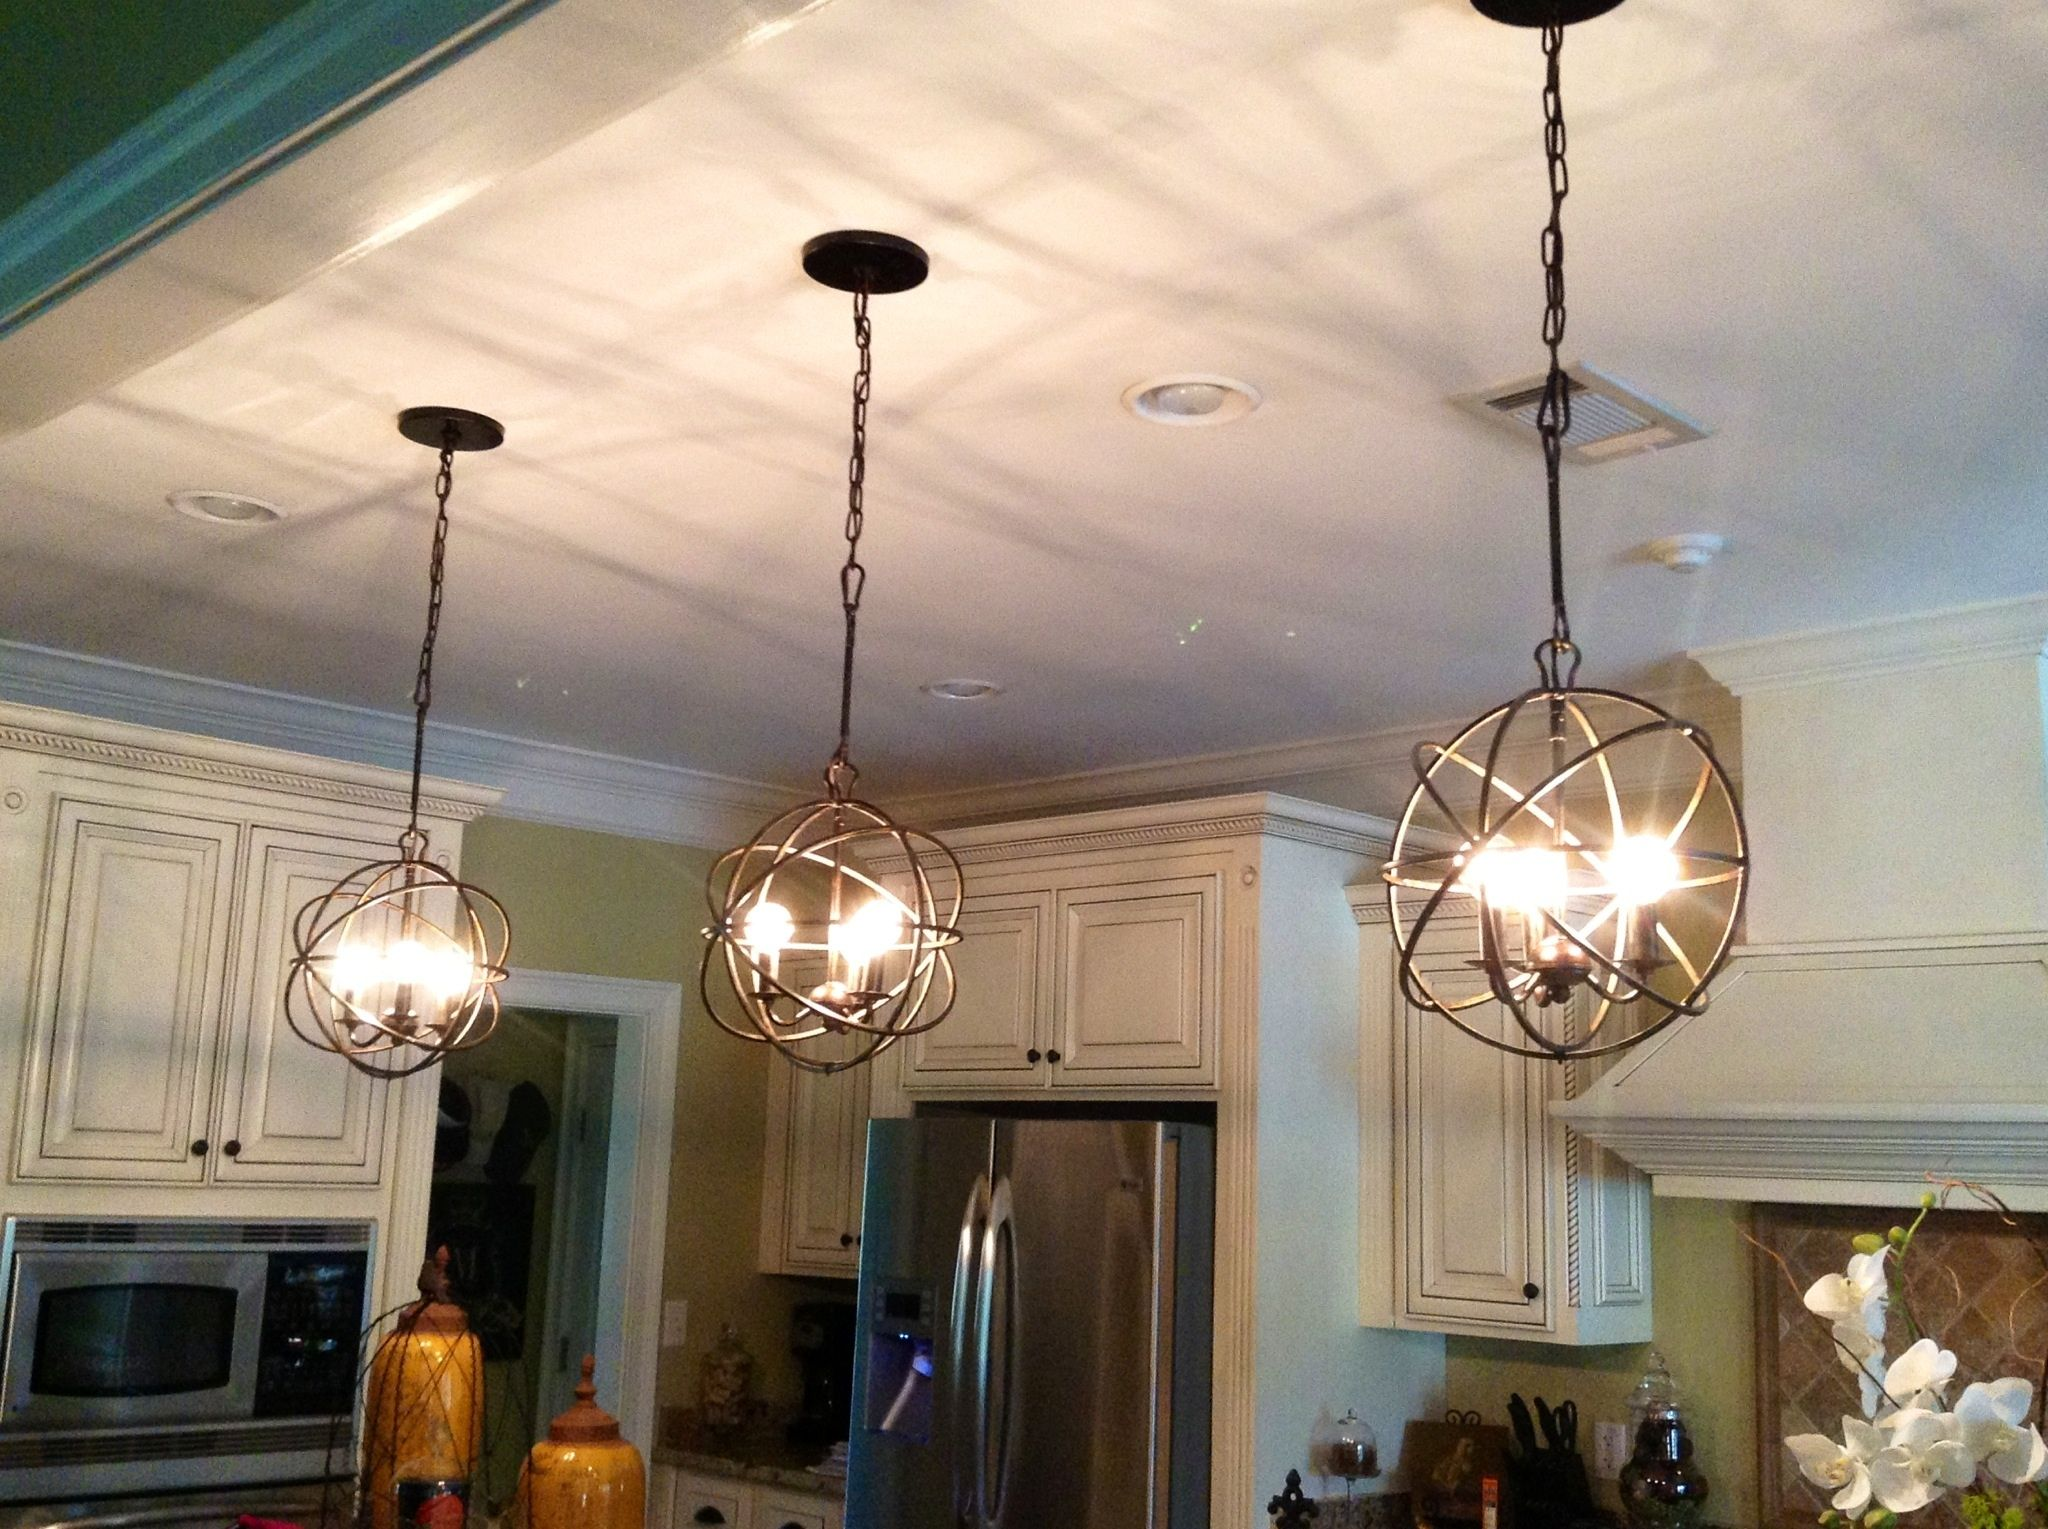 mini pendant lights for kitchen island best material sink love the orb by chris m how to decorate house